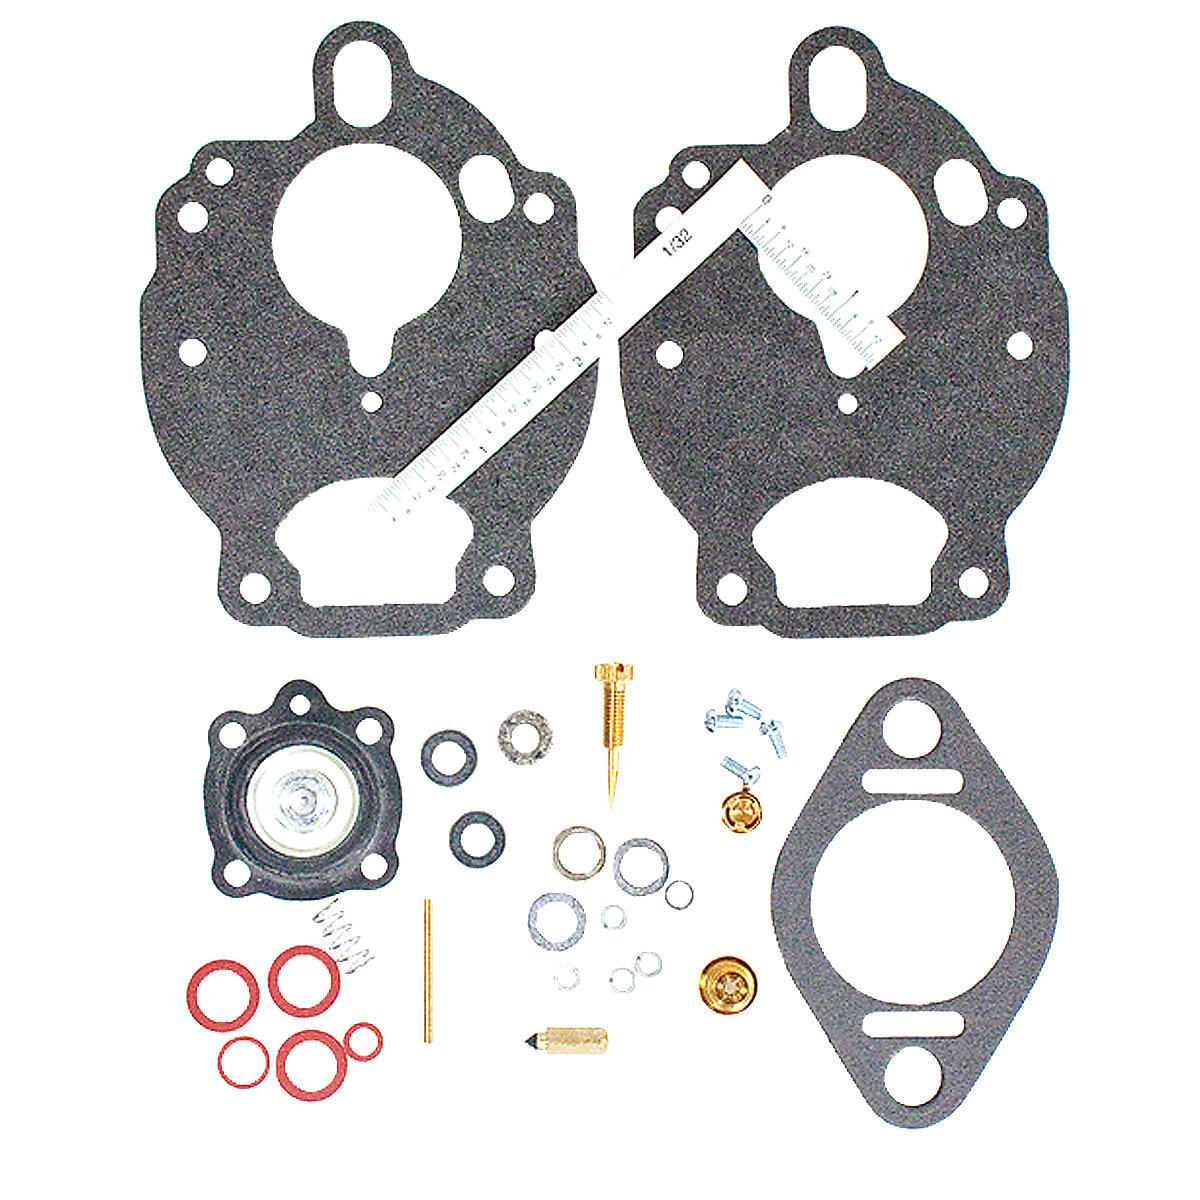 hight resolution of economy carburetor repair kit for ford tractors 2000 2600 3000 3400 3500 3600 4000 4100 4400 4500 4600 and 5000 with zenith carburetors